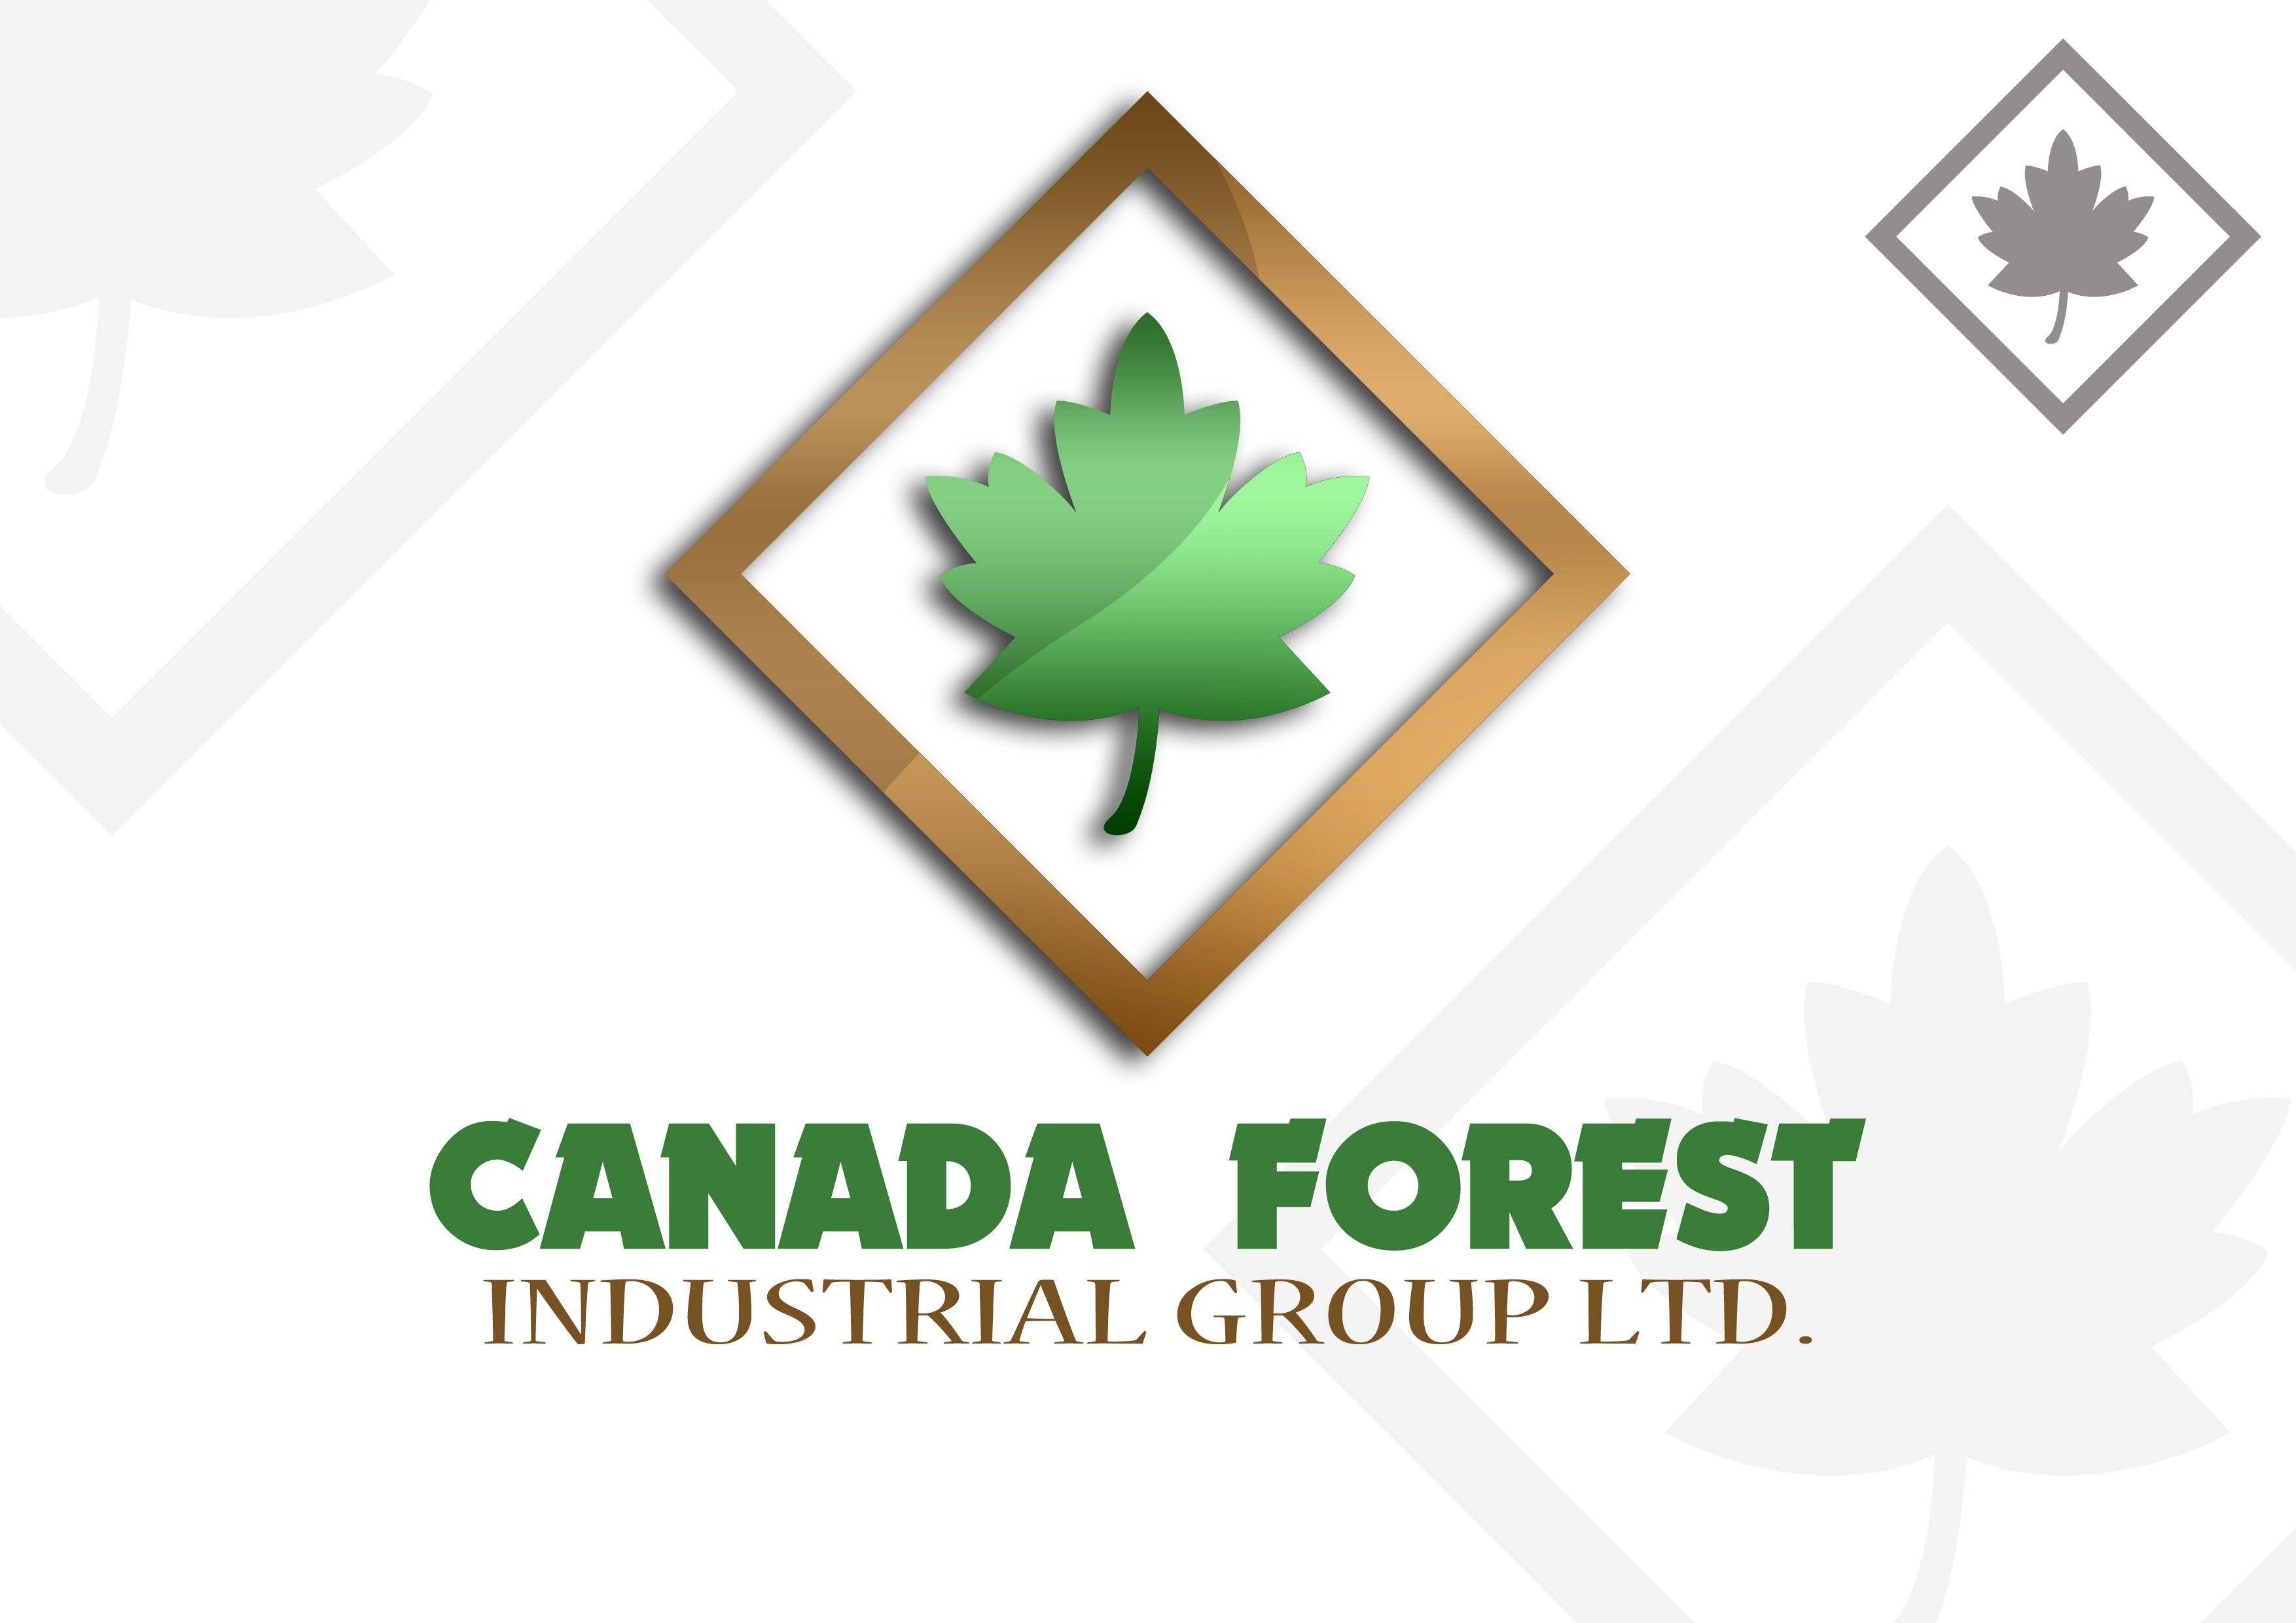 Logo Design by Jesther Jordan Minor - Entry No. 39 in the Logo Design Contest Creative Logo Design for Canada Forest Industrial Group Ltd..